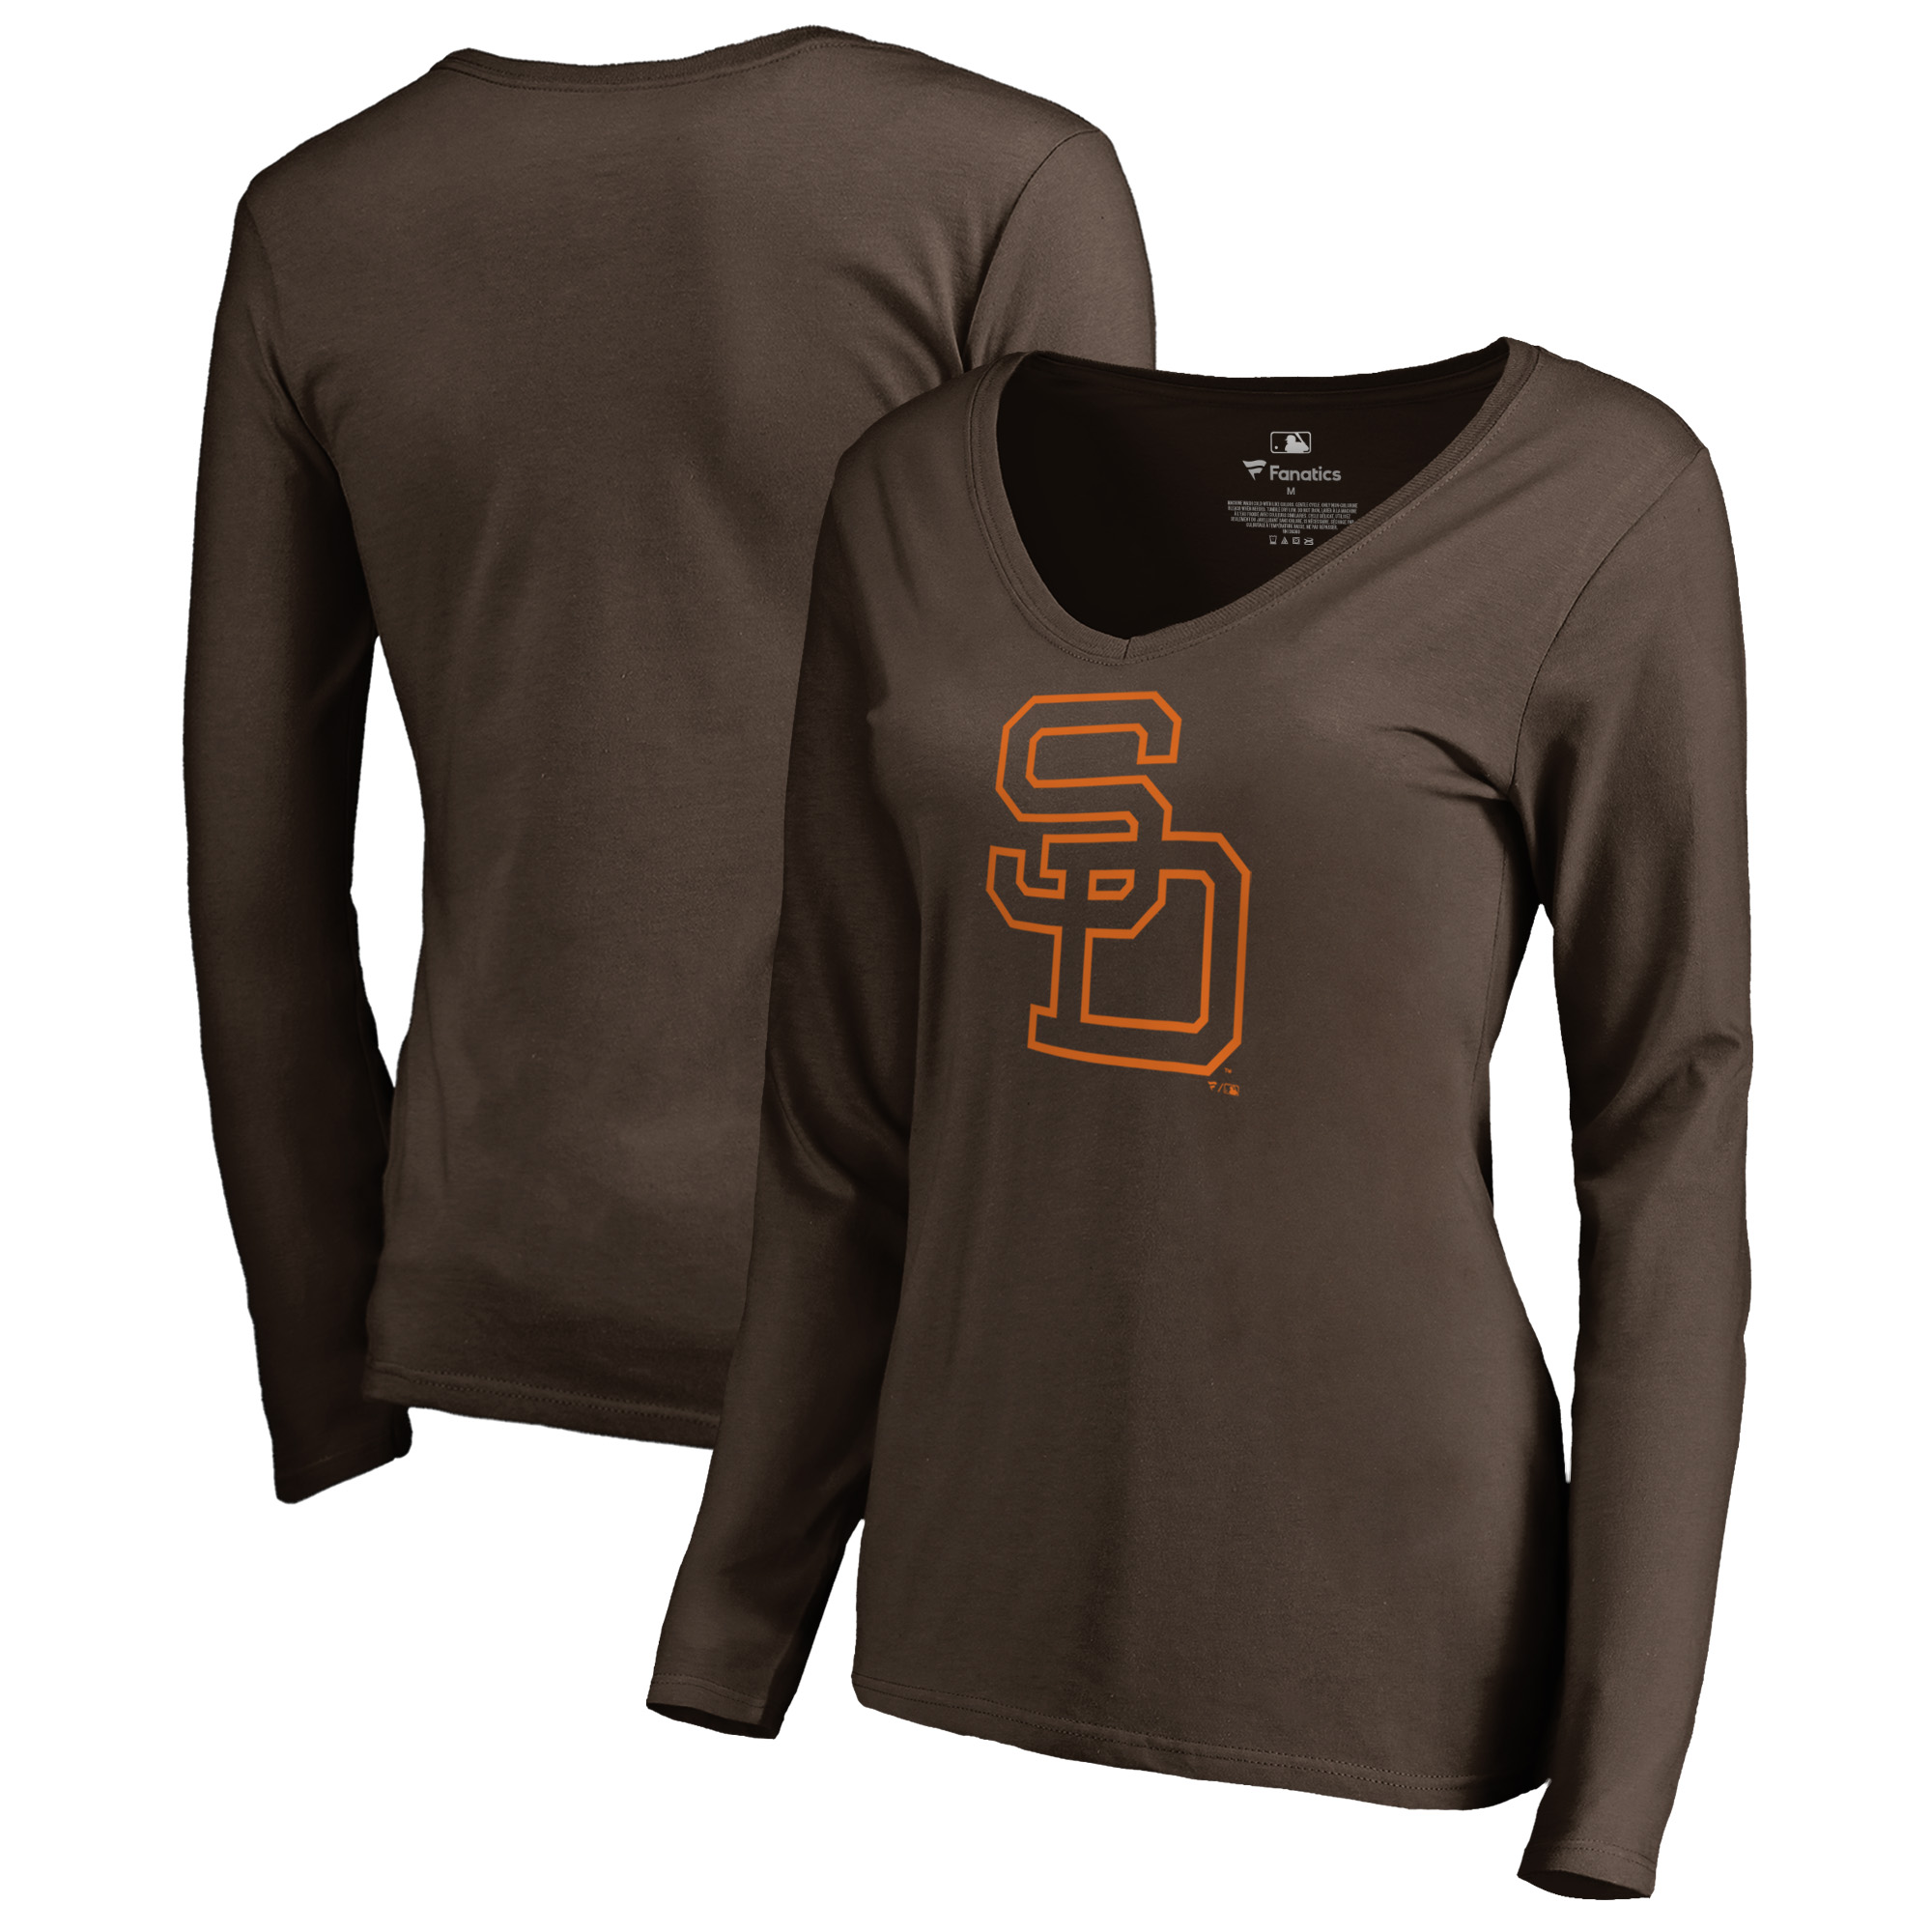 Fanatics Branded Women's Cooperstown Collection Huntington Long Sleeve V-Neck T-Shirt - Brown